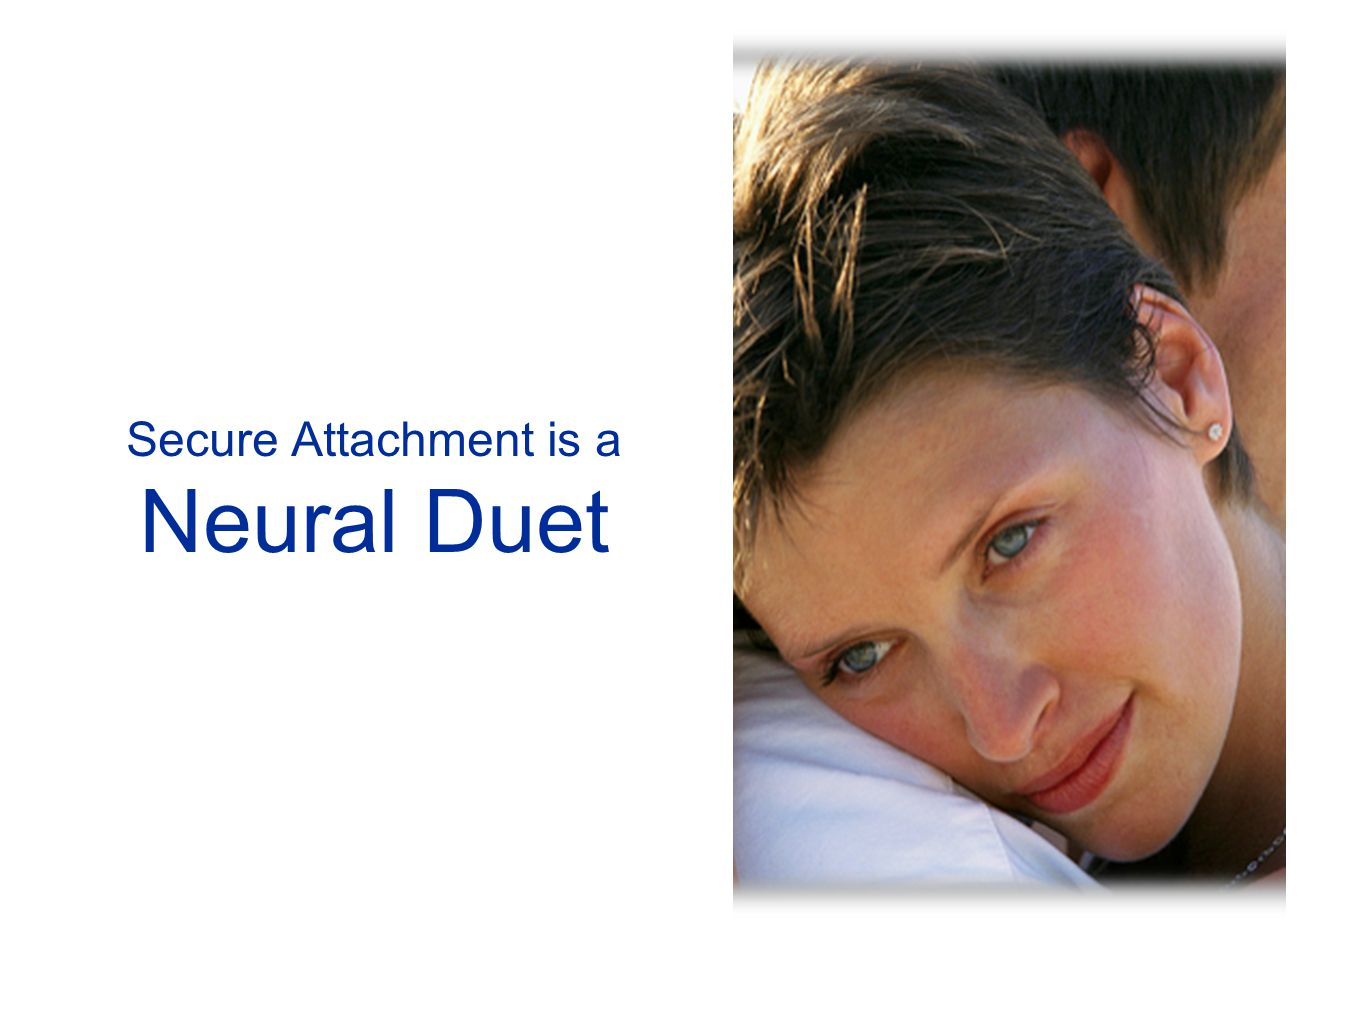 Secure Attachment is a Neural Duet